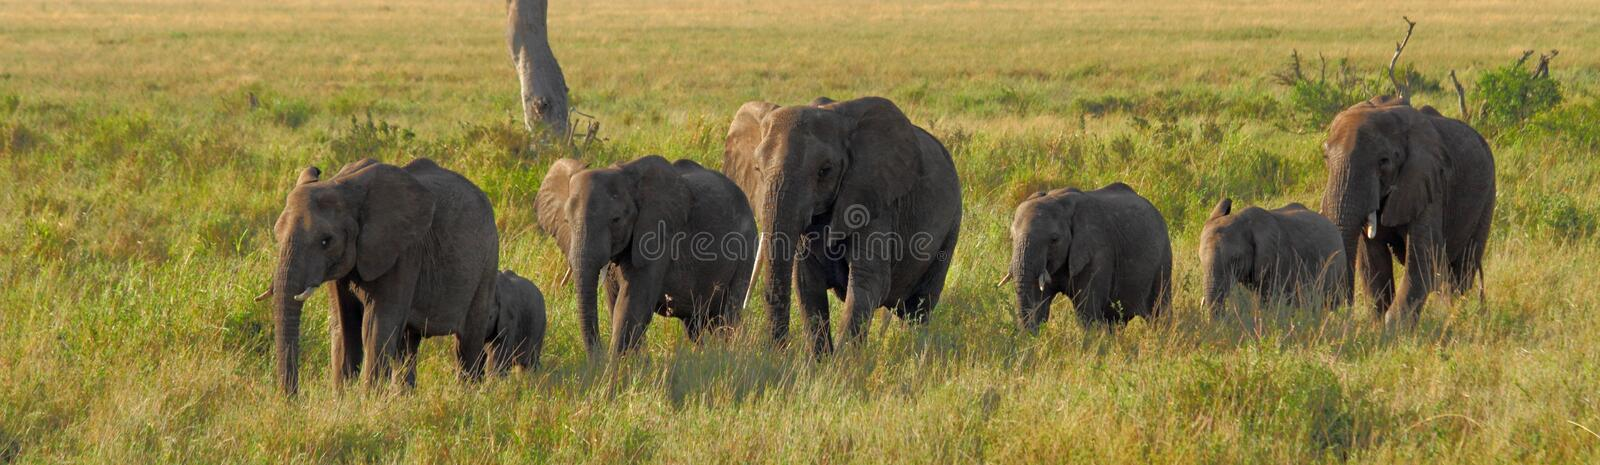 elephants in a line stock image image of calf mammals